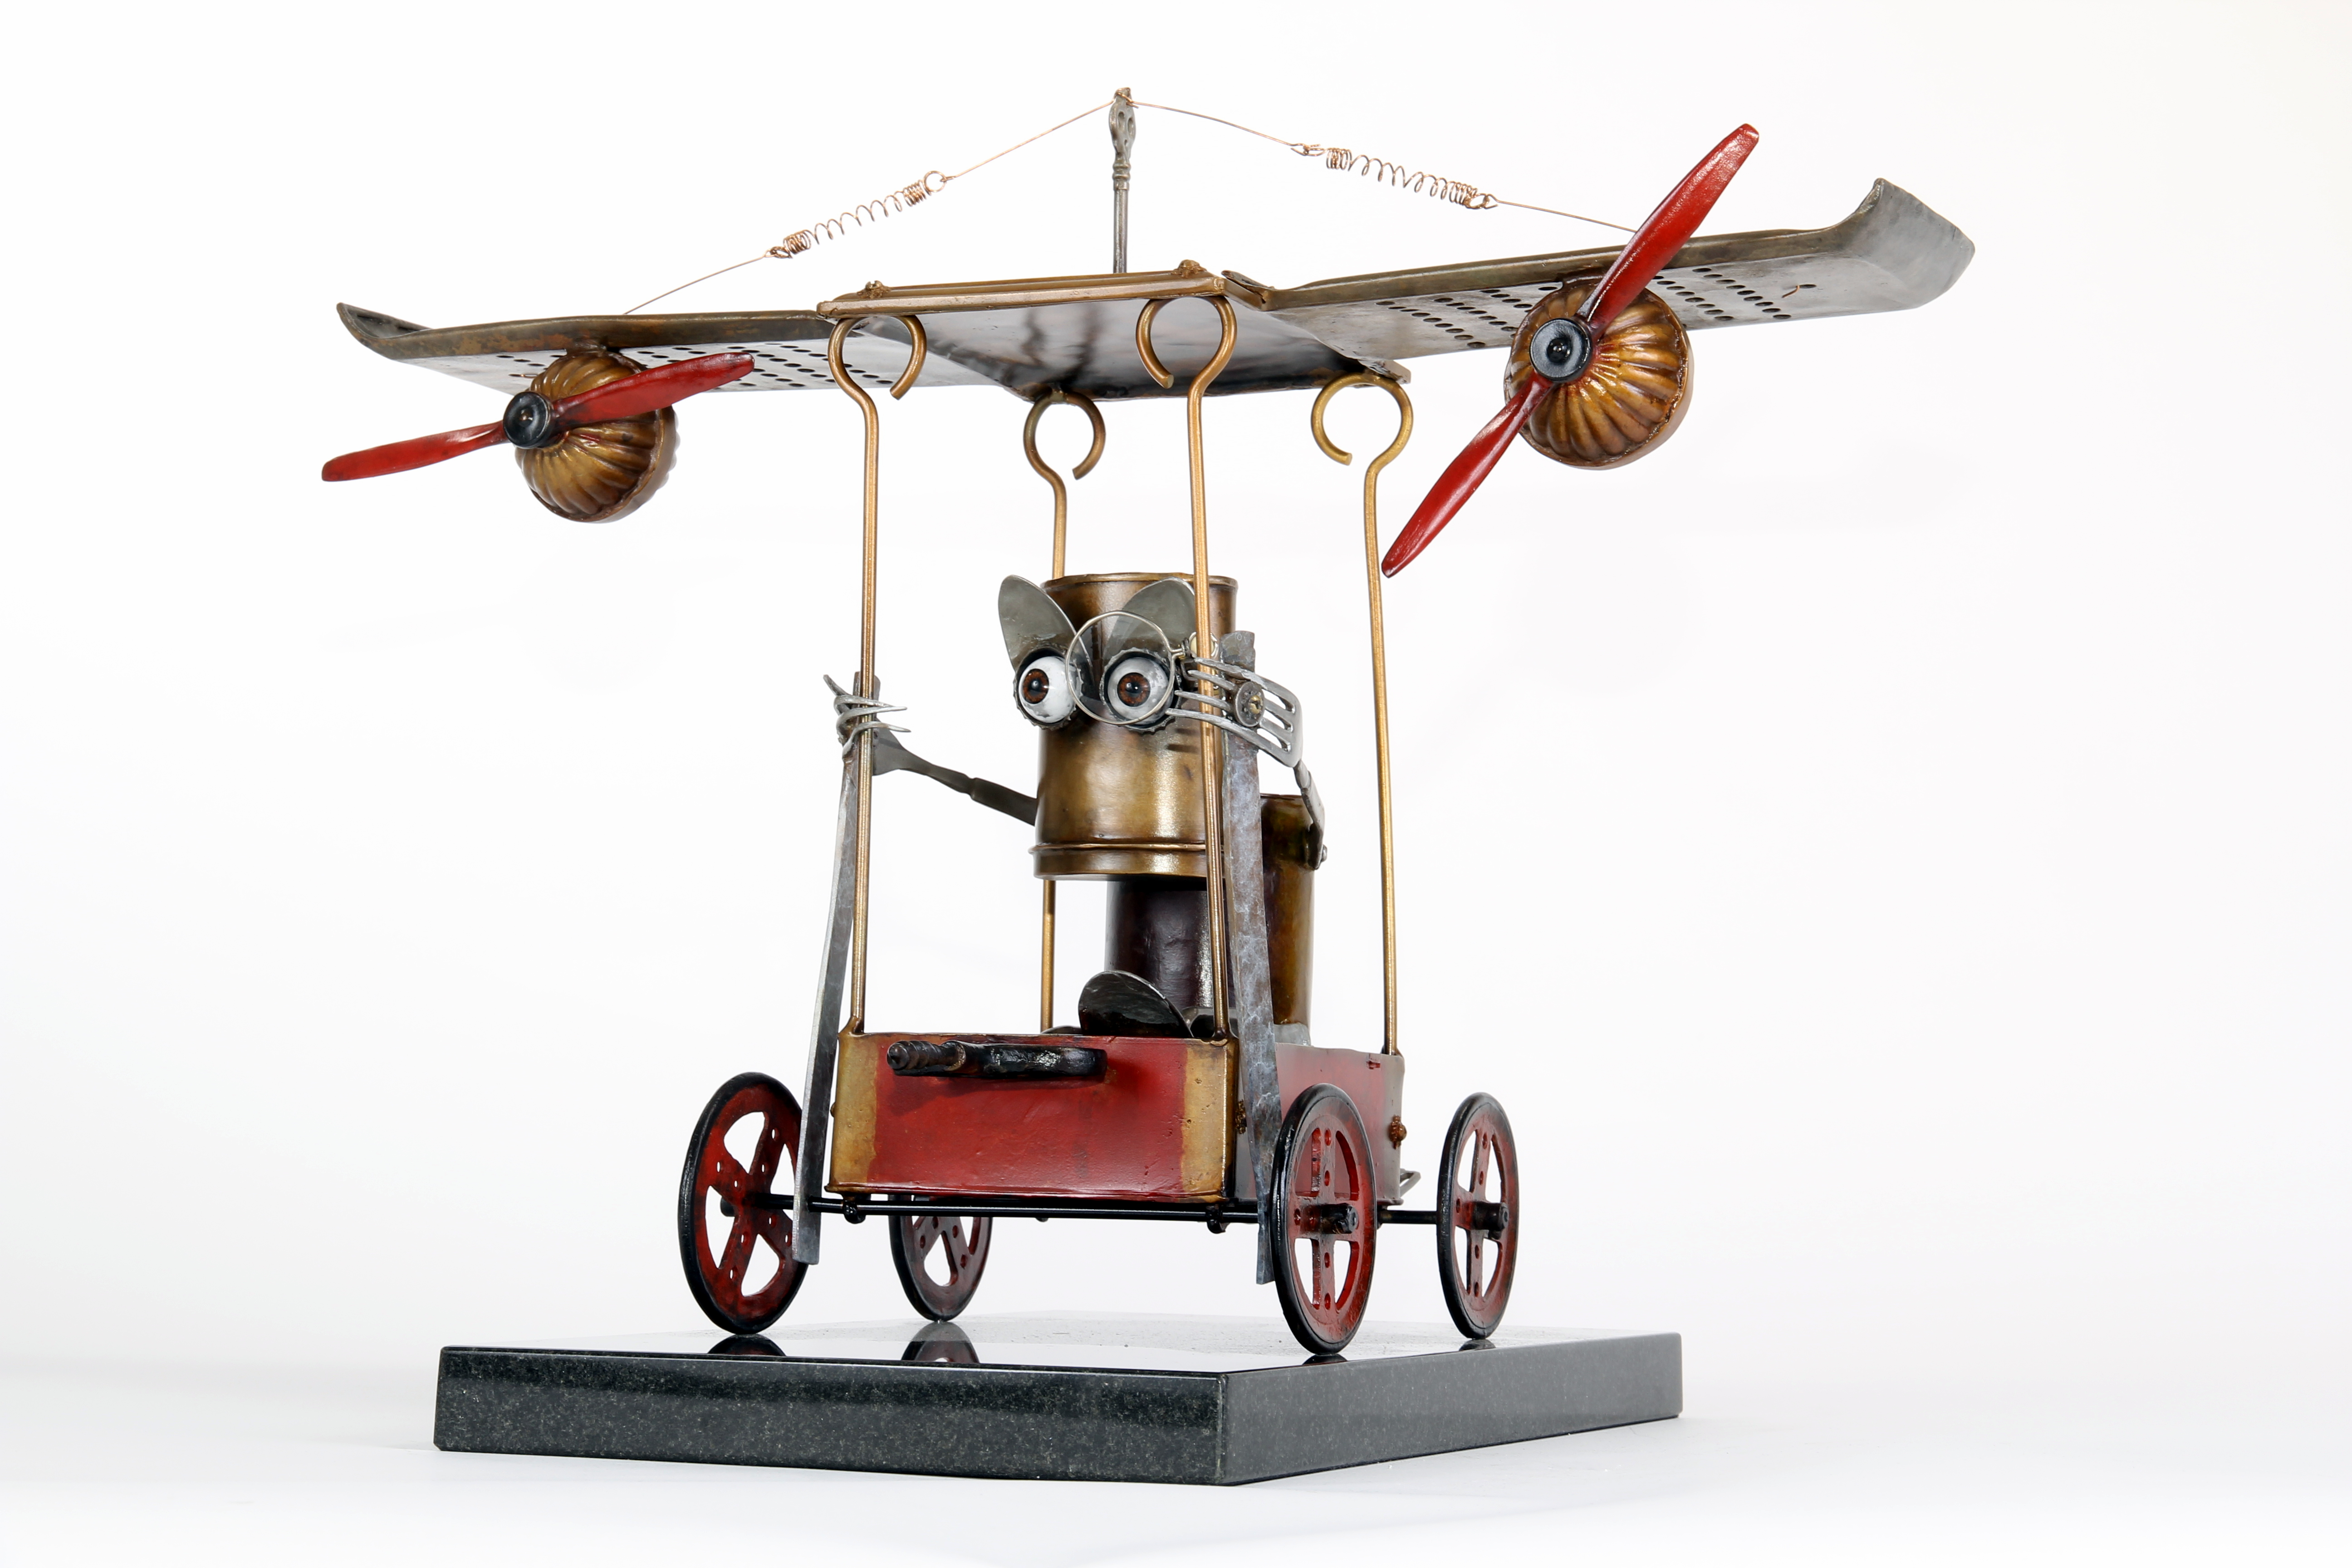 Fantastique machine volante - BRONZE